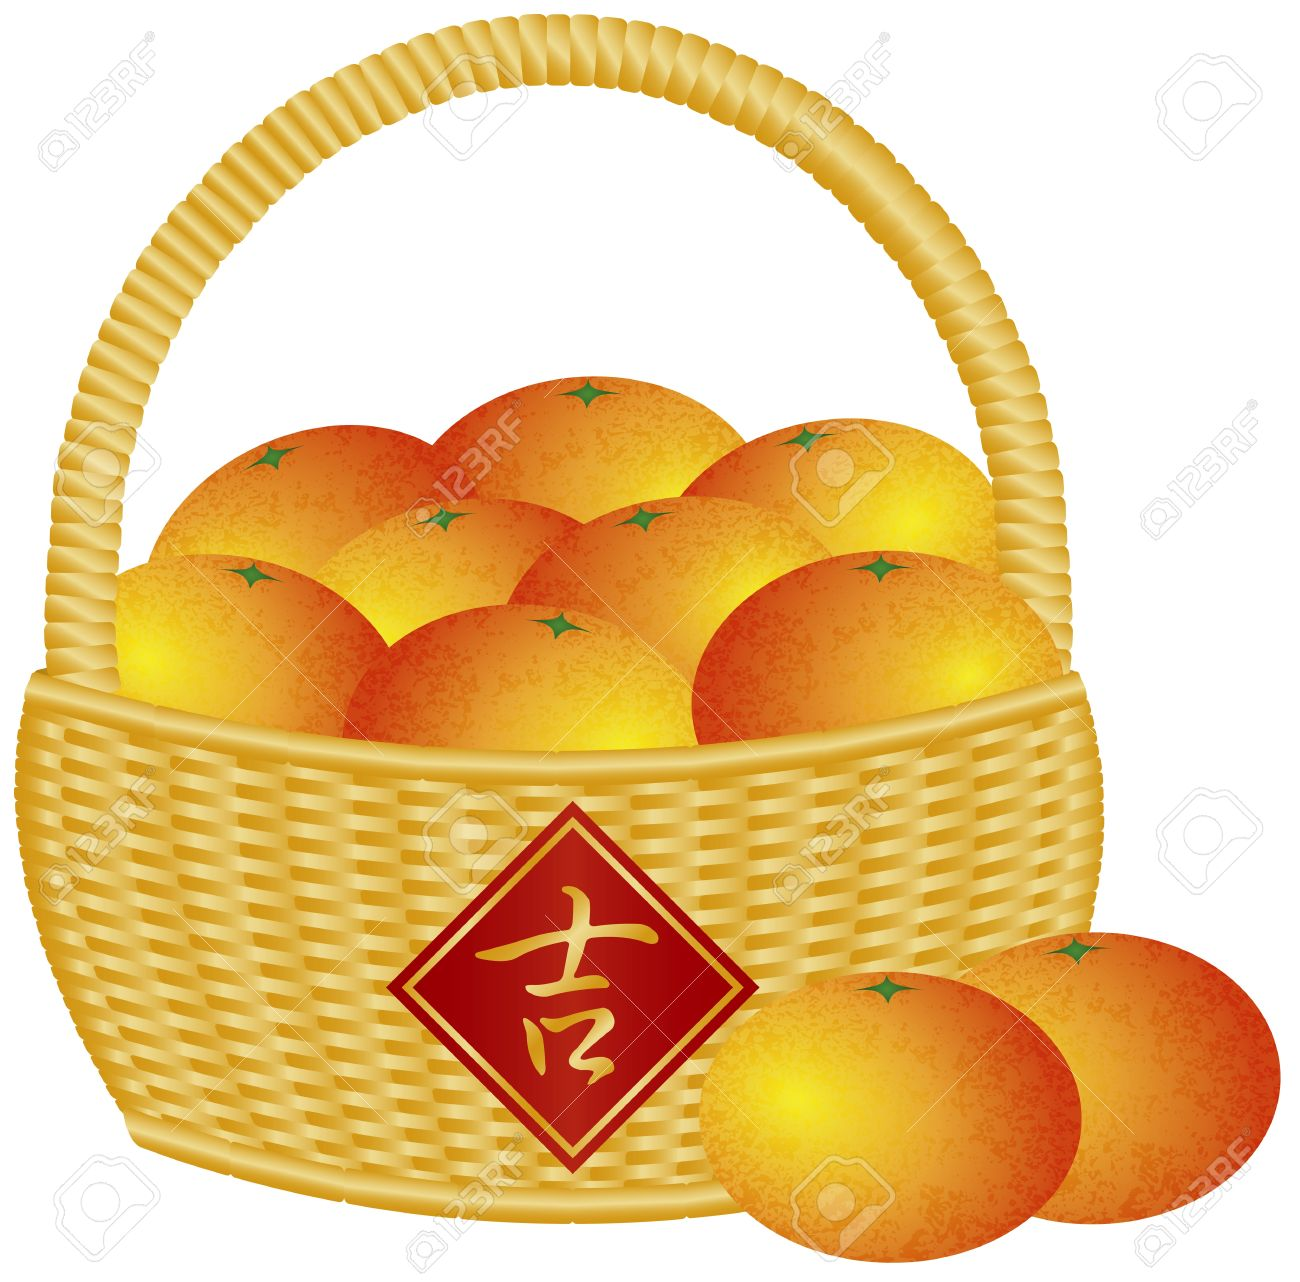 Chinese New Year Basket Of Mandarin Oranges With Good Fortune